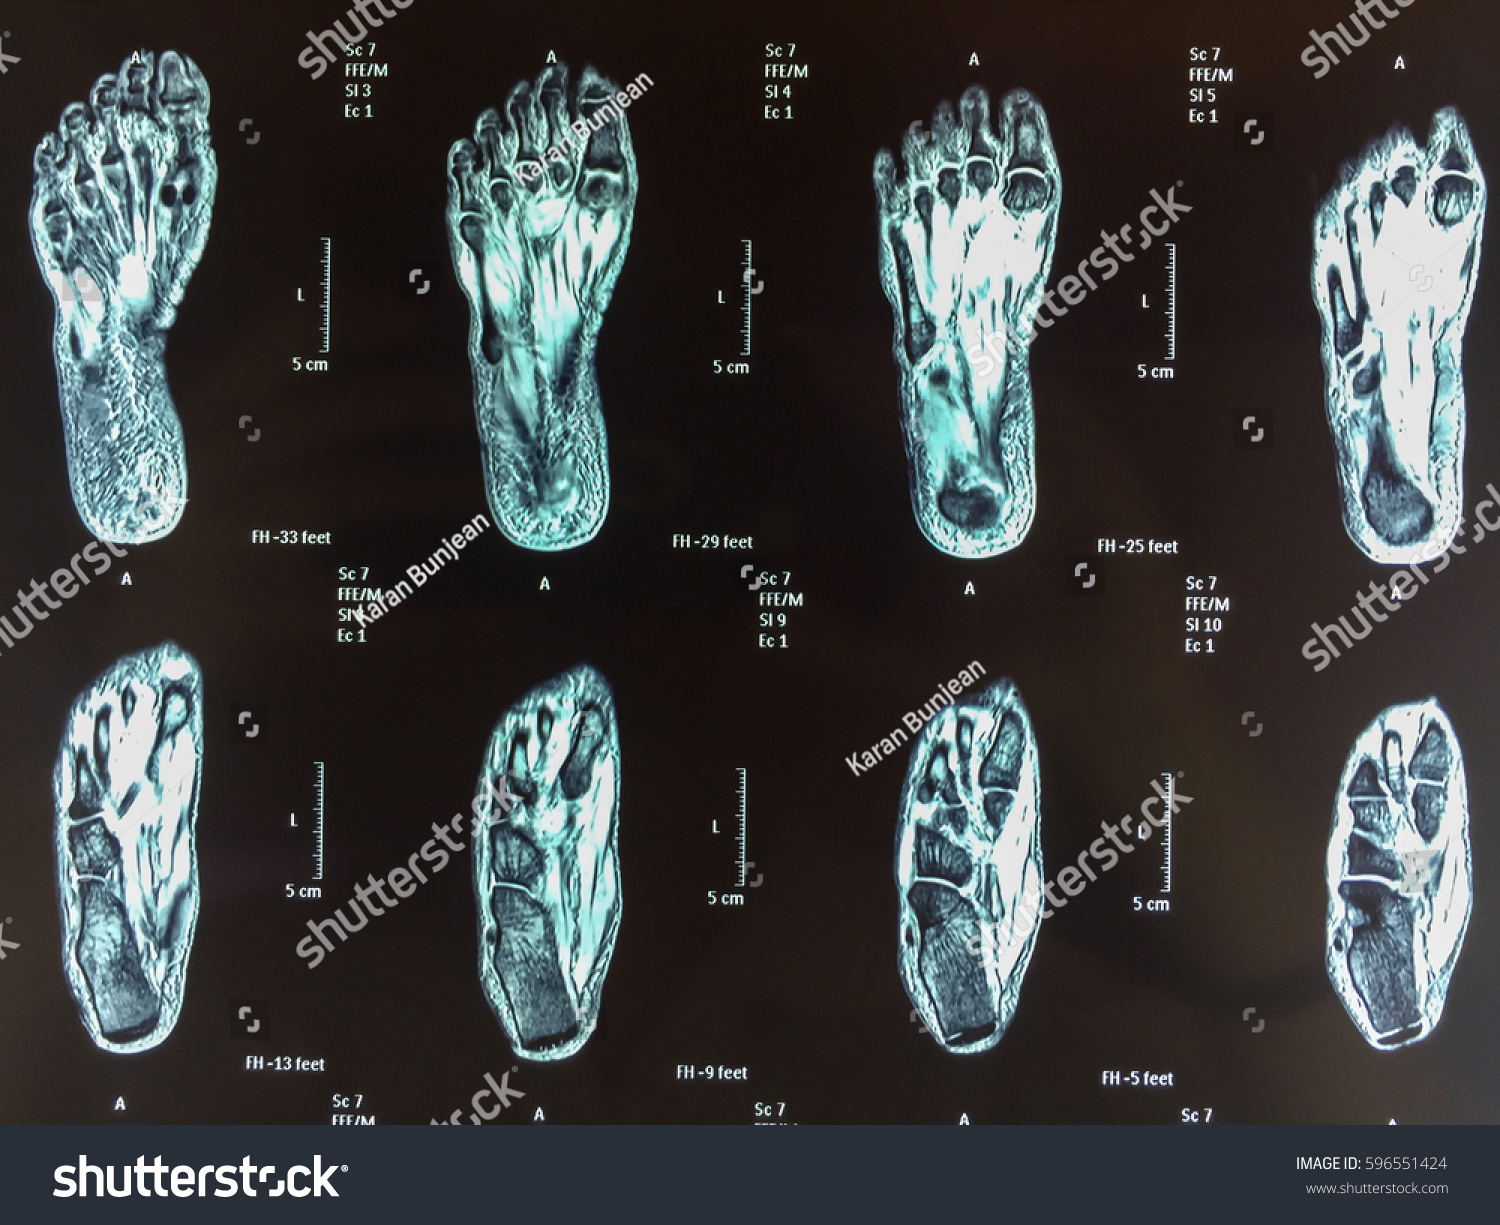 Normal MRI Foot Transverse View Stock Photo (Royalty Free) 596551424 ...